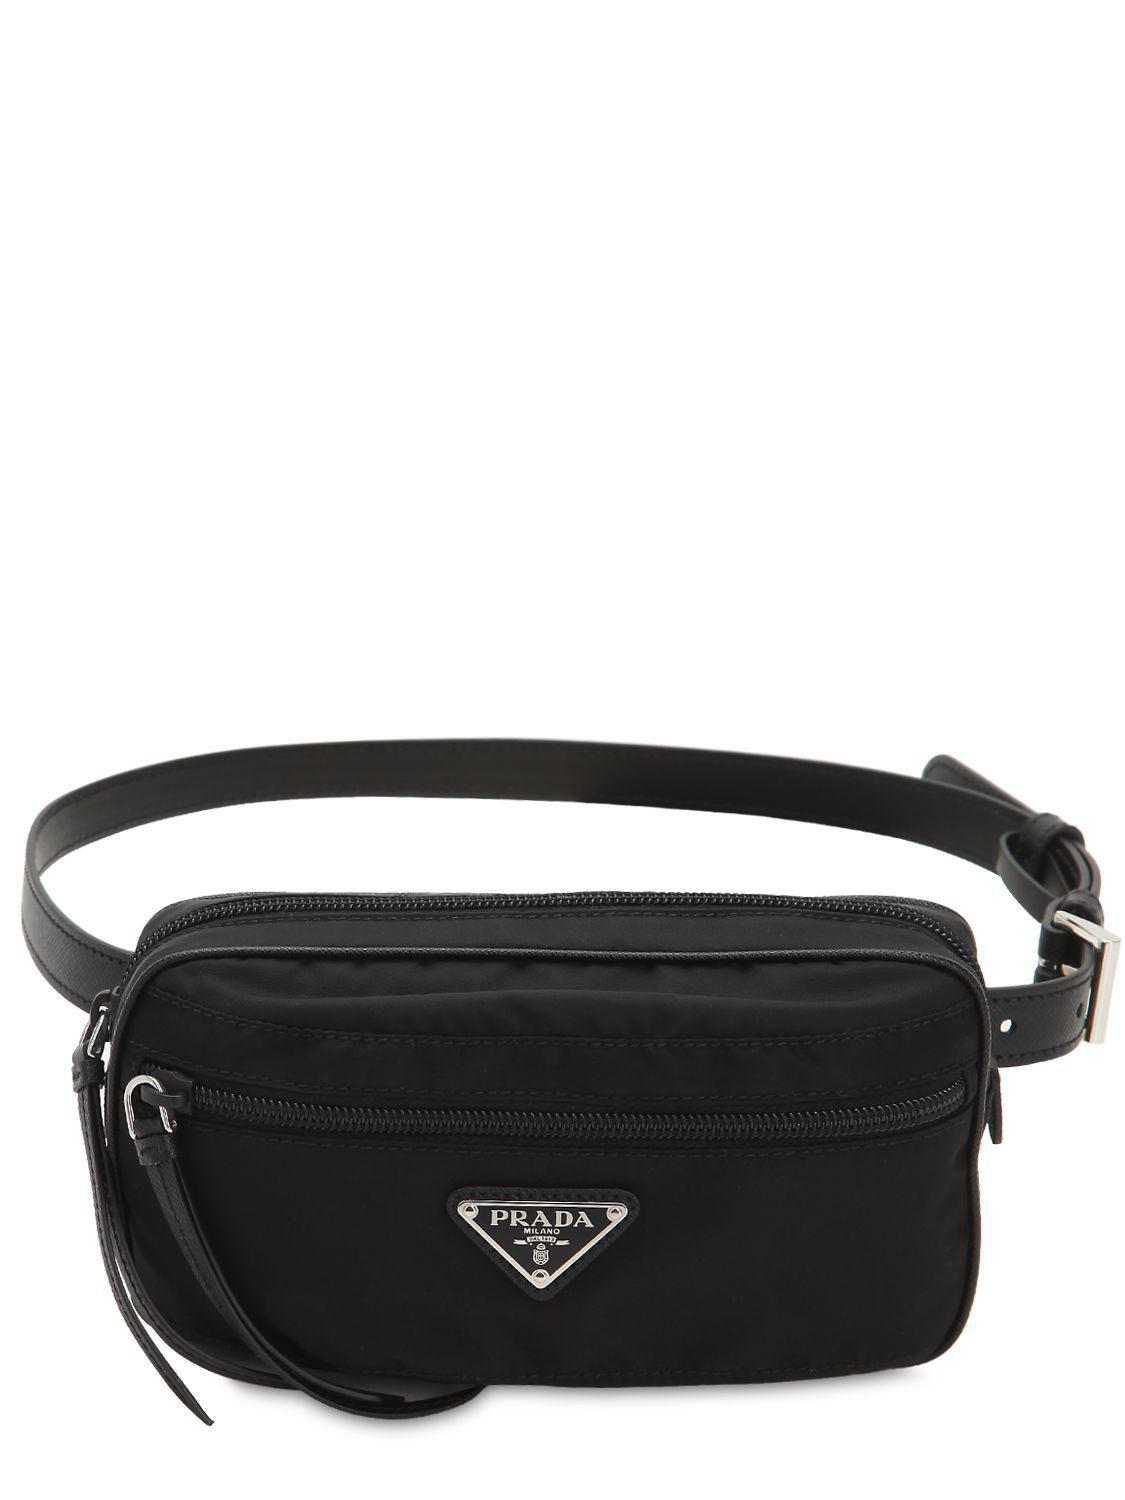 359b433a5047 Prada - Black Nylon Belt Bag - Lyst. View fullscreen